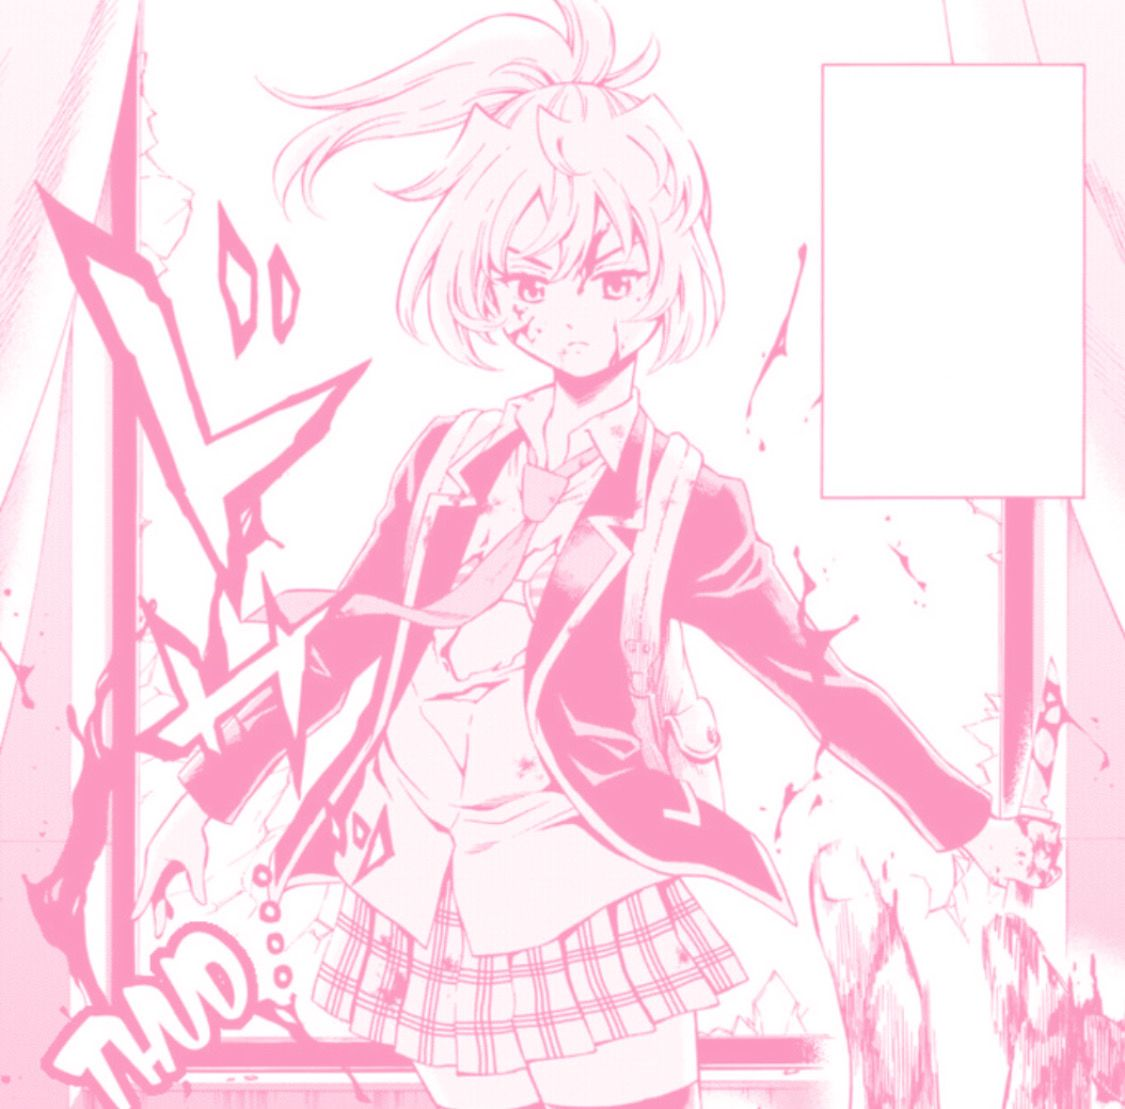 High Rise Invasion In 2021 Anime Pink Aesthetic Girl Anime pink wallpaper gif